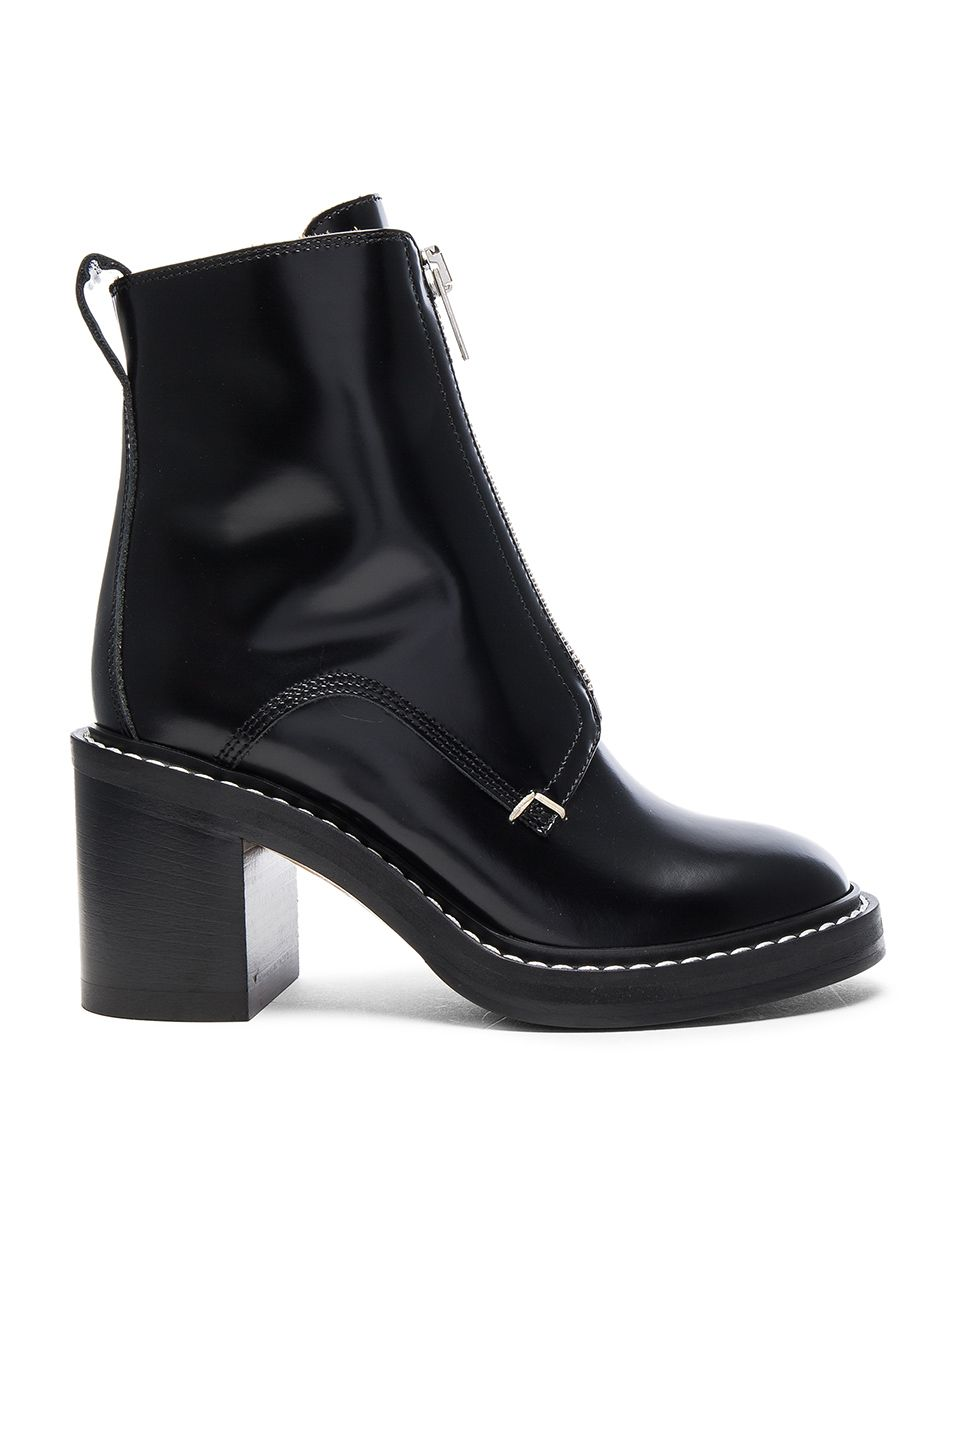 Image 1 of Rag & Bone Leather Shelby Boots in Black